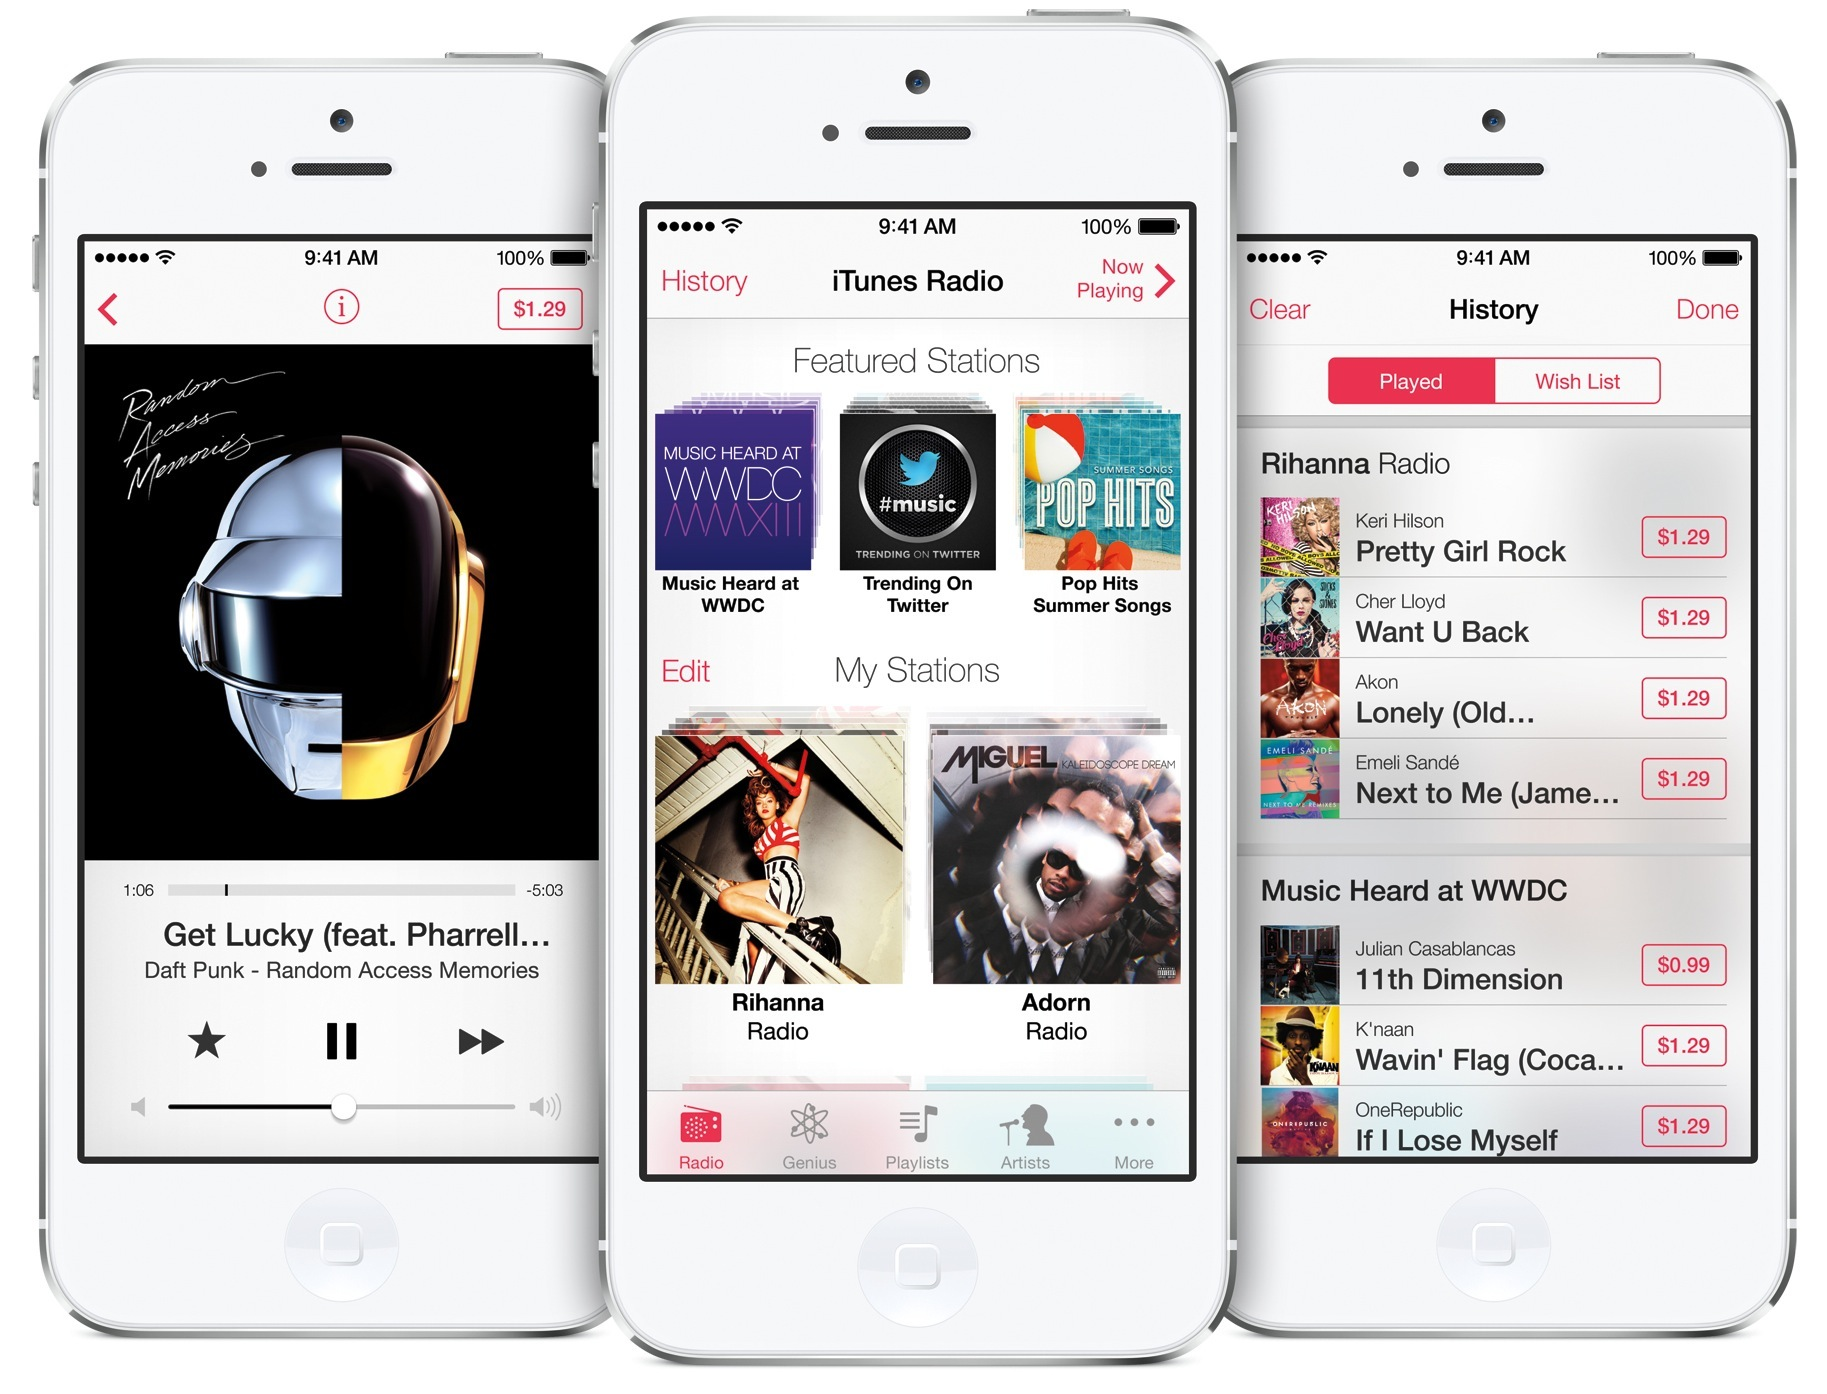 iTunes Radio is no longer free